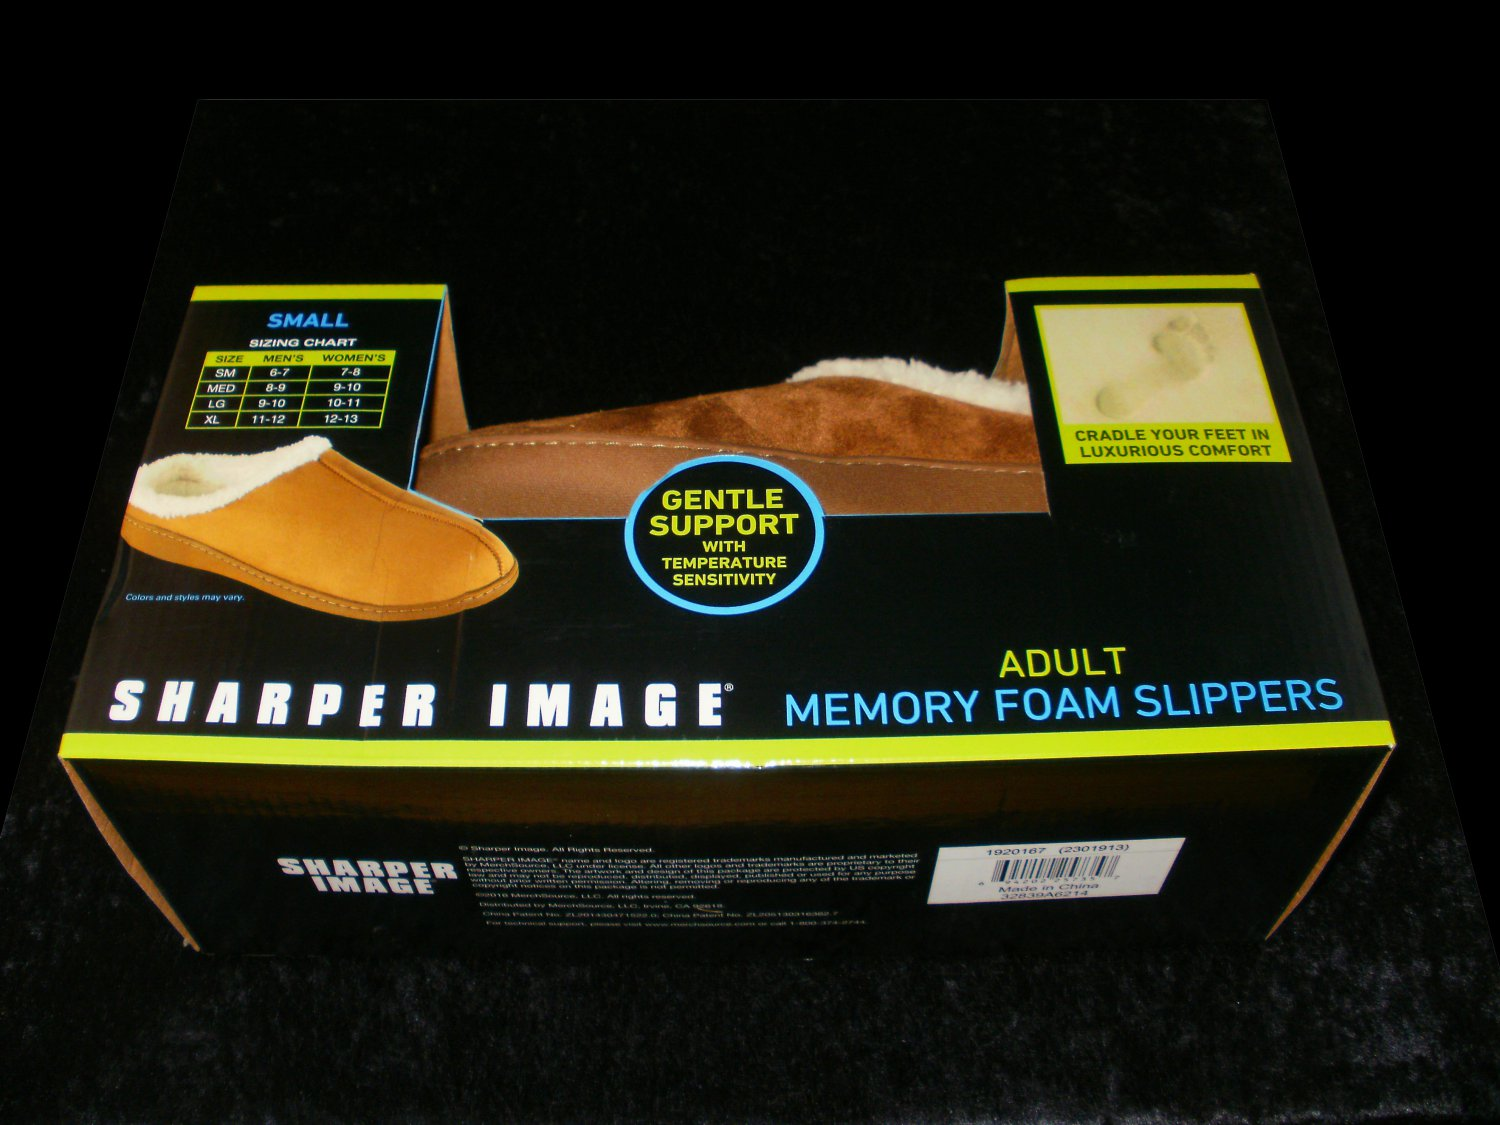 Memory Foam Slippers - 2016 Sharper Image - Size Small 6-7 Mens 7-8 Women - Brand New